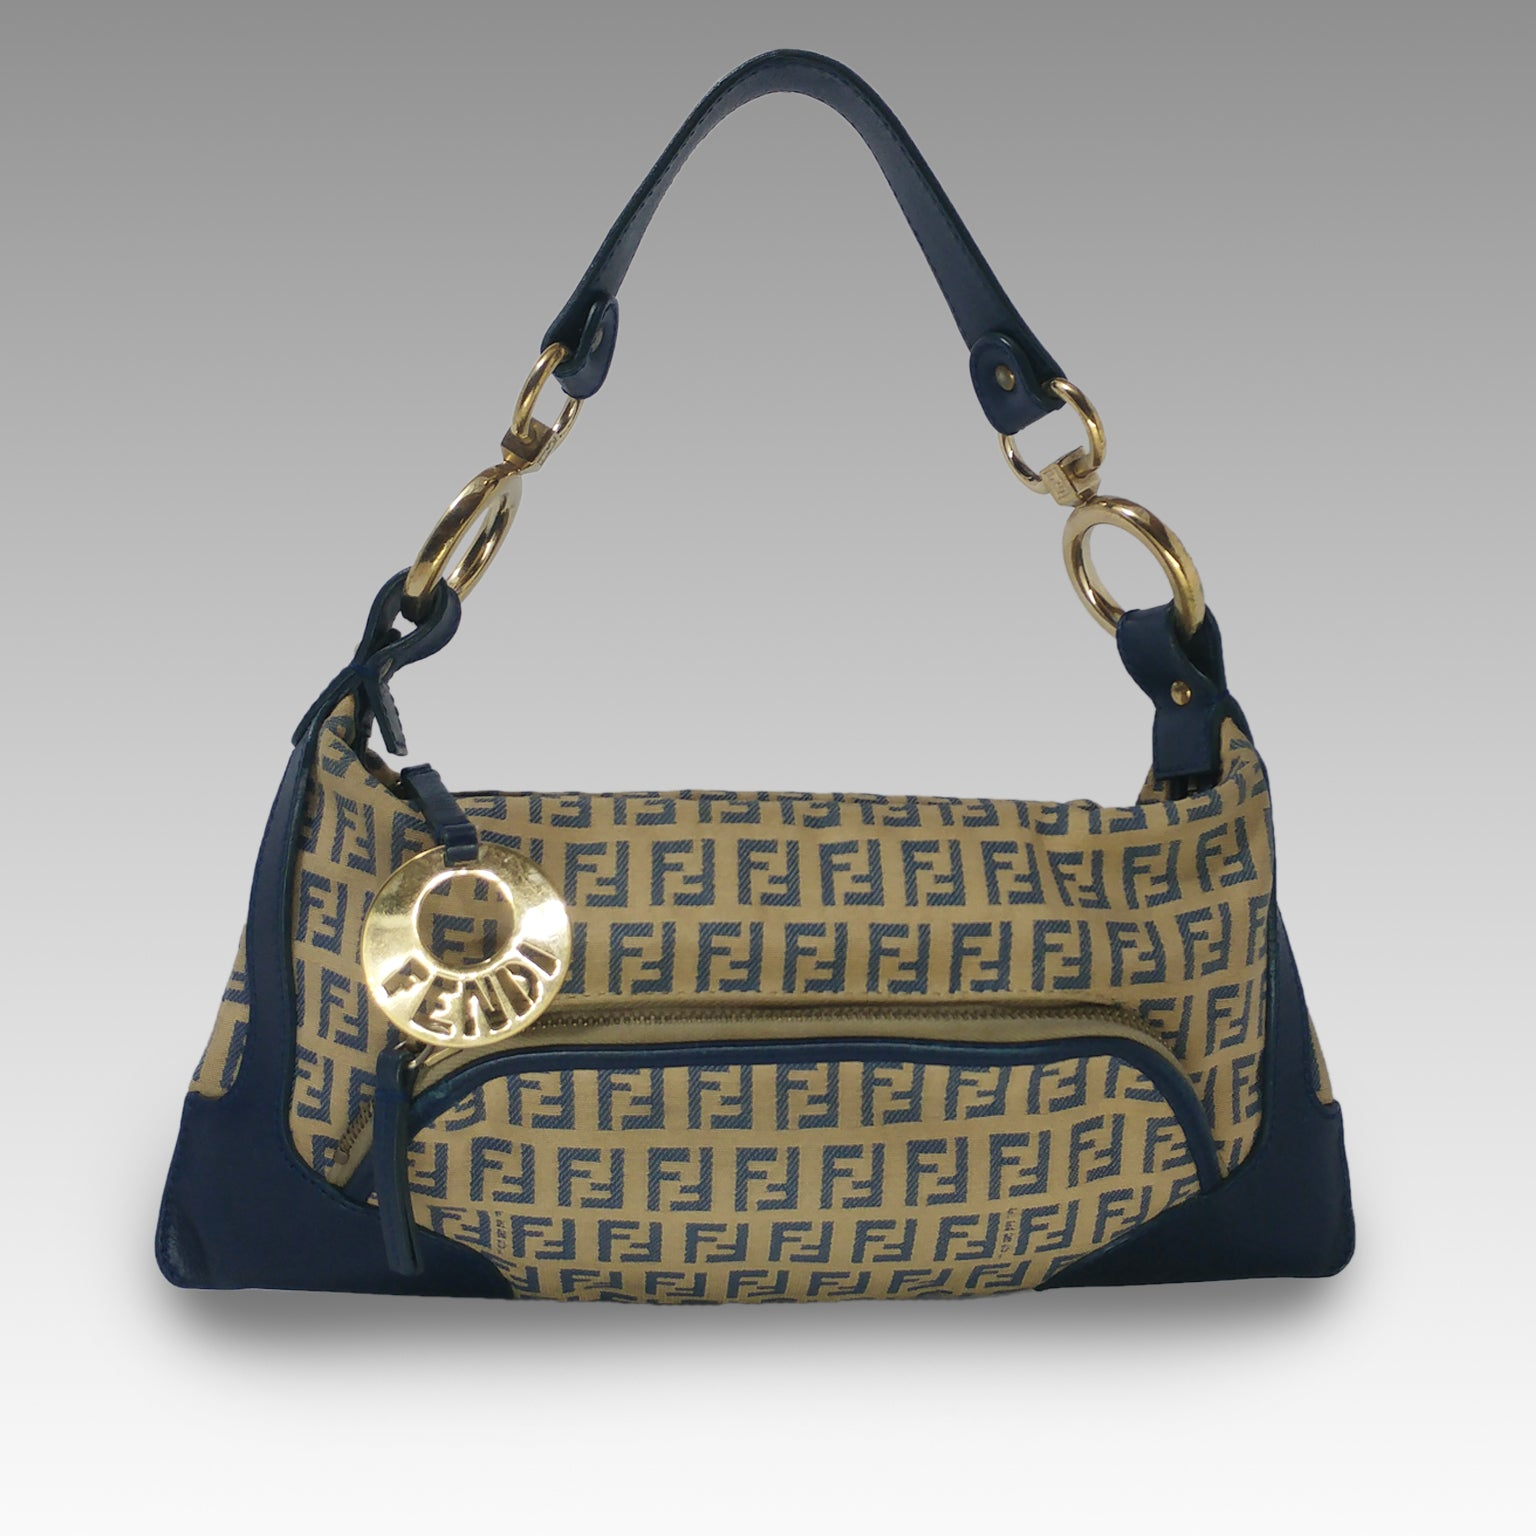 Fendi, Fendi Zucca Brown/Blue Shoulder Bag - CHLOEZACH